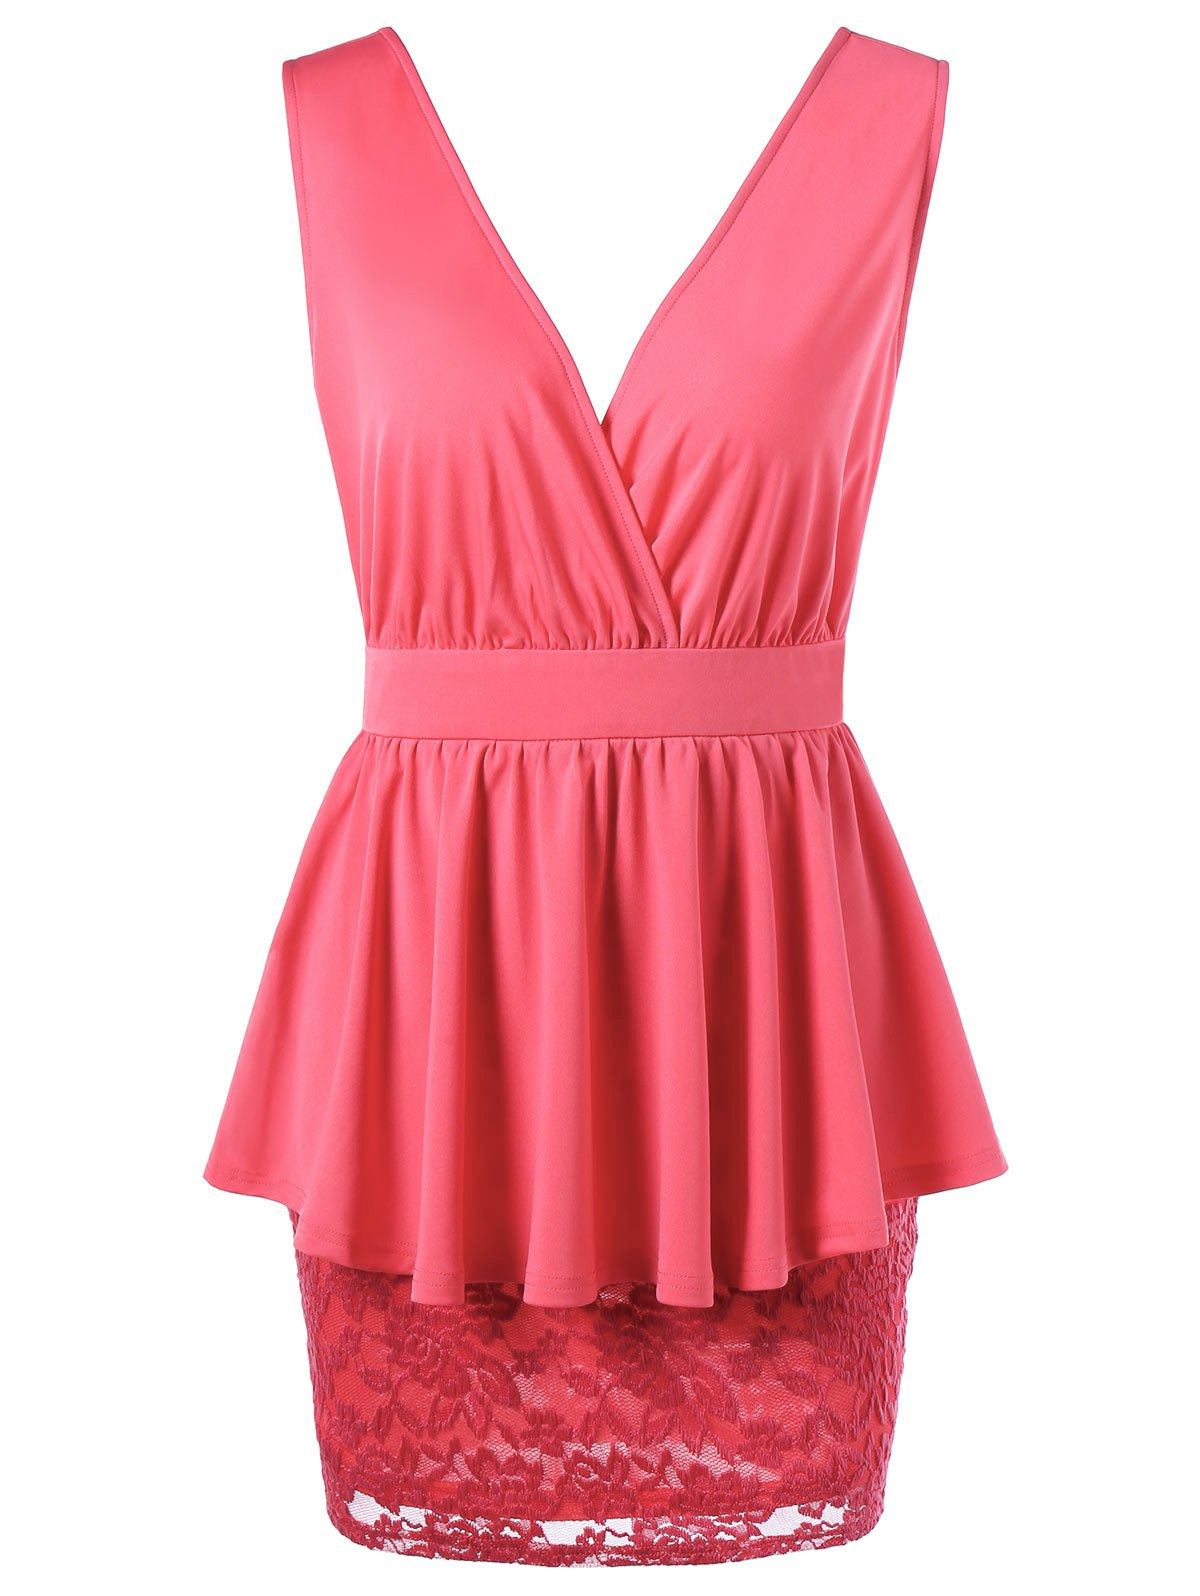 Crossover Lace Peplum Dress - WATERMELON RED L